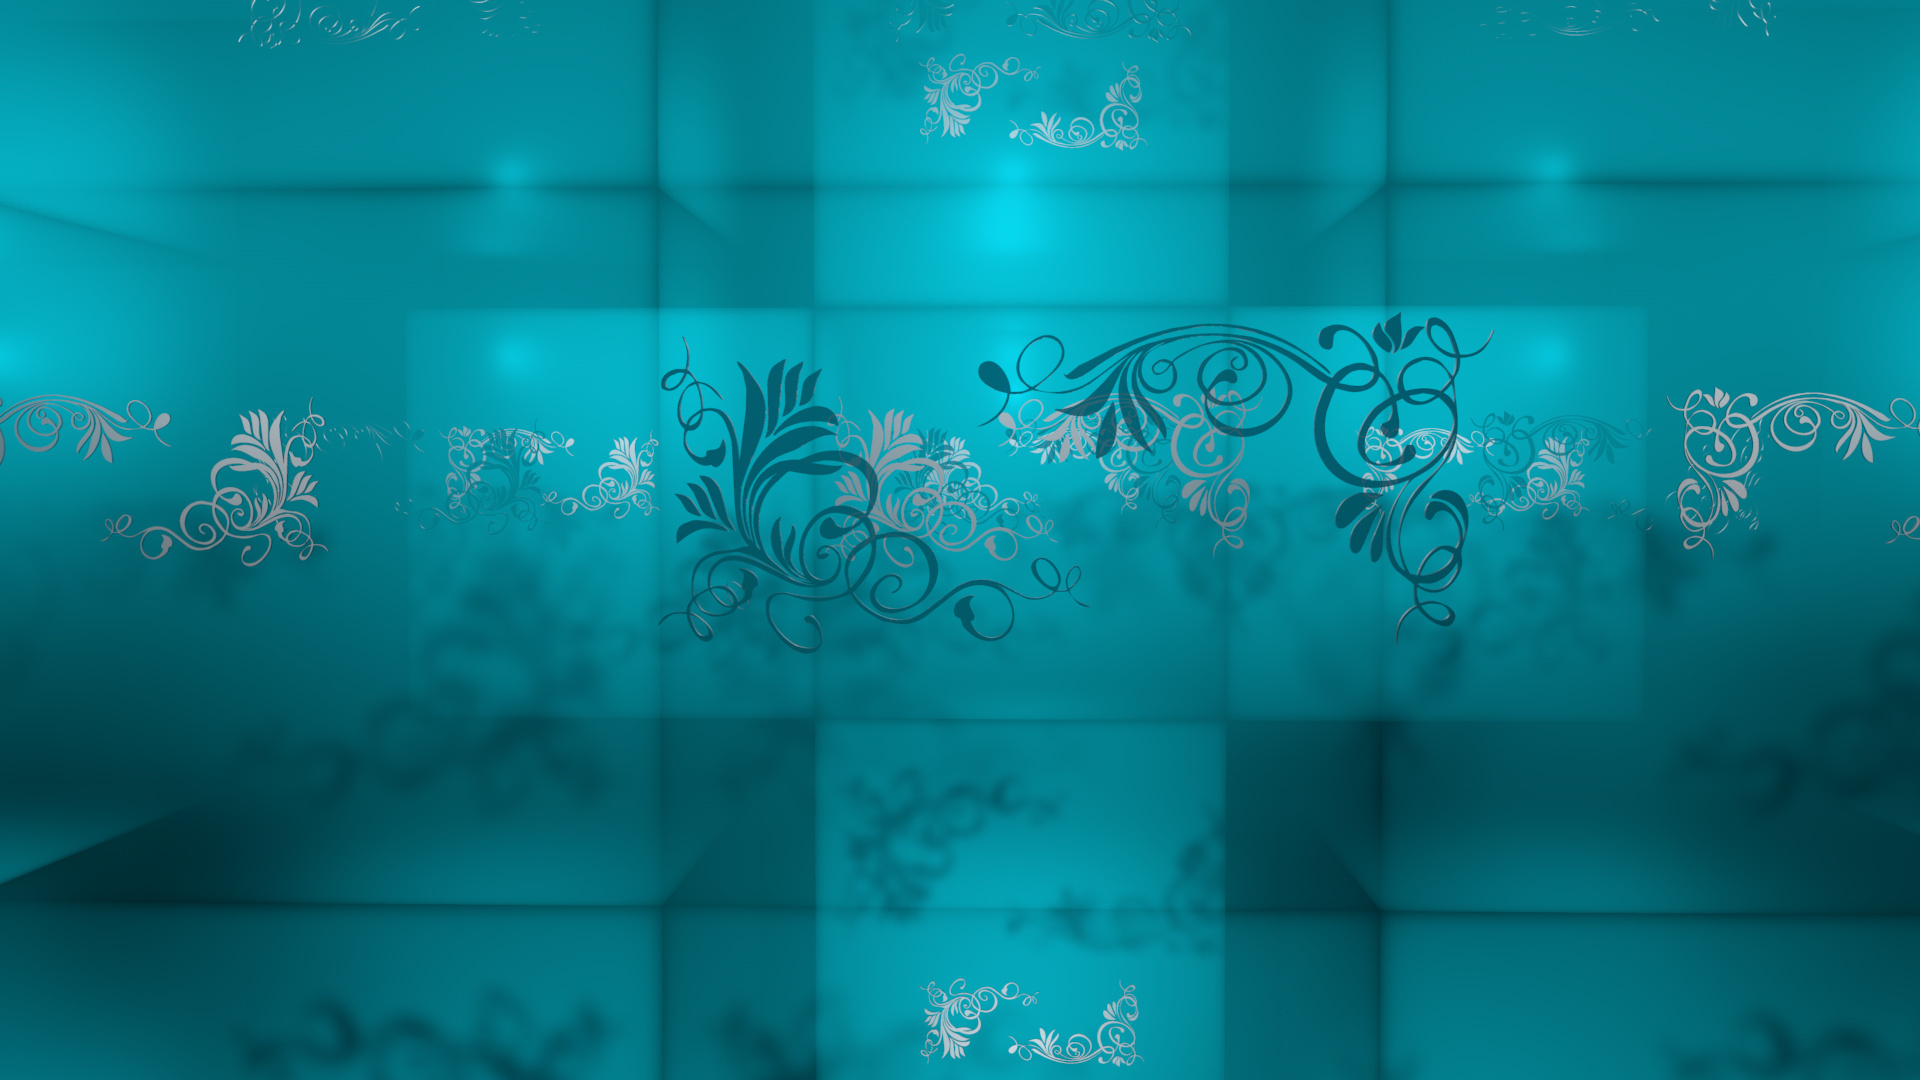 turquoise abstract computer wallpaper - photo #27